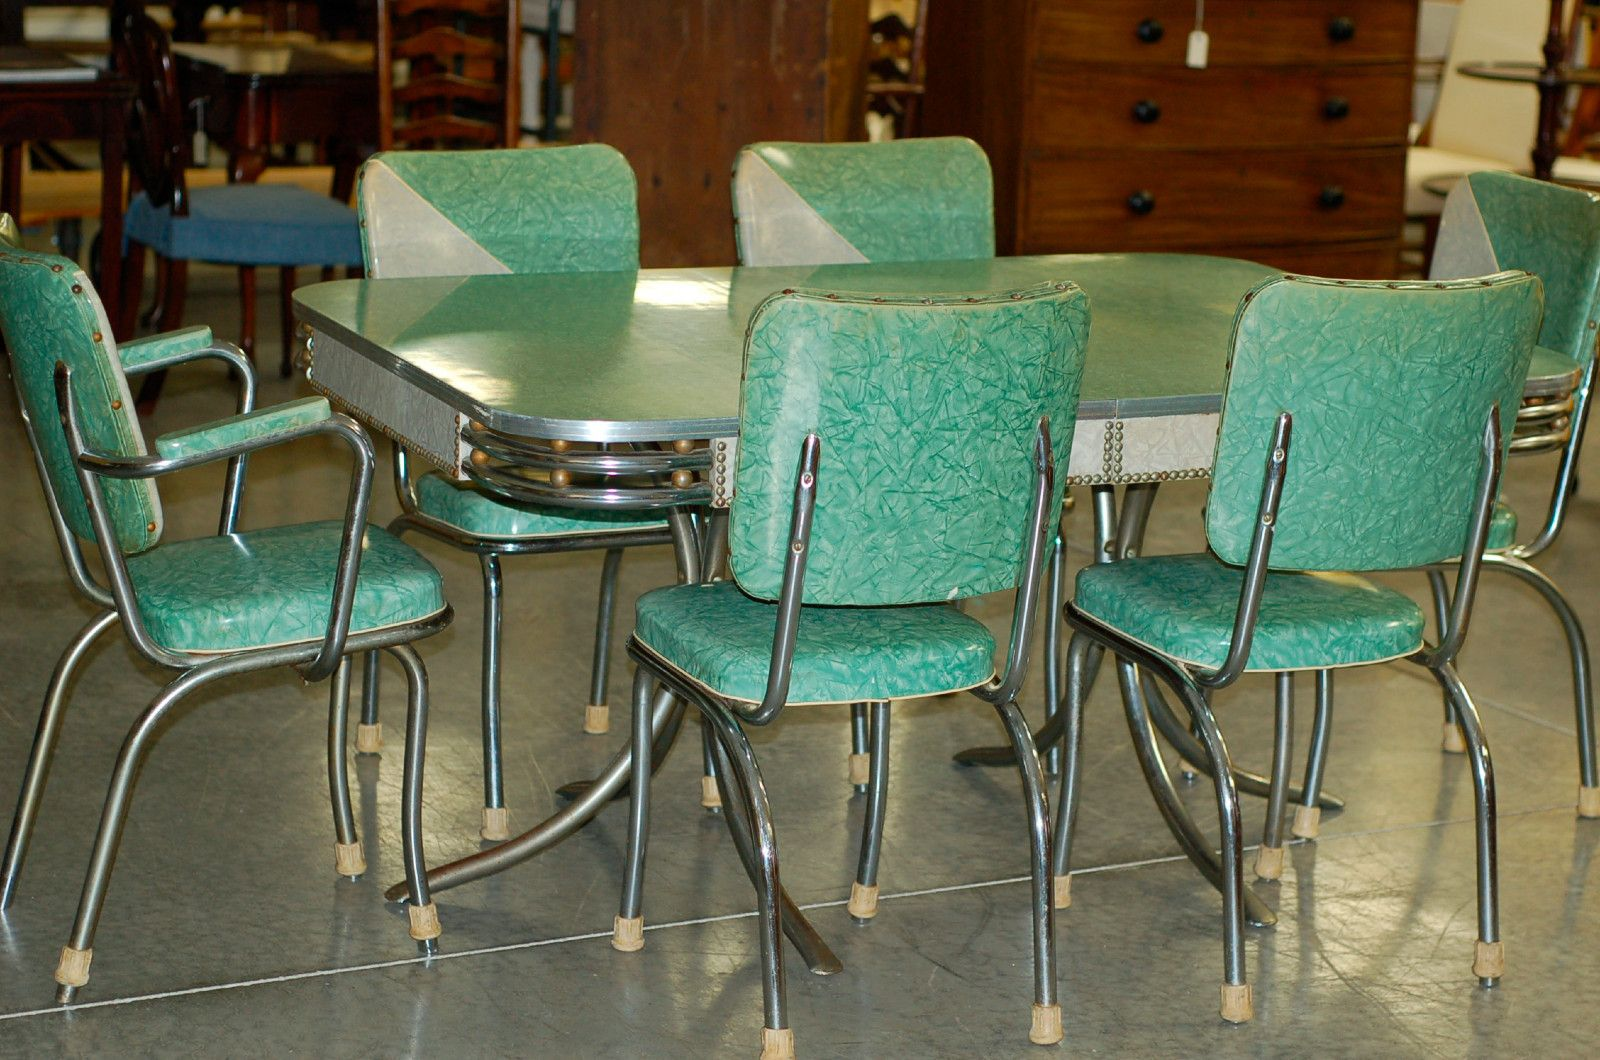 Chrome Vintage 1950's Formica Kitchen Table And Chairs Teal Mint Beauteous 1950 Kitchen Table And Chairs Design Inspiration